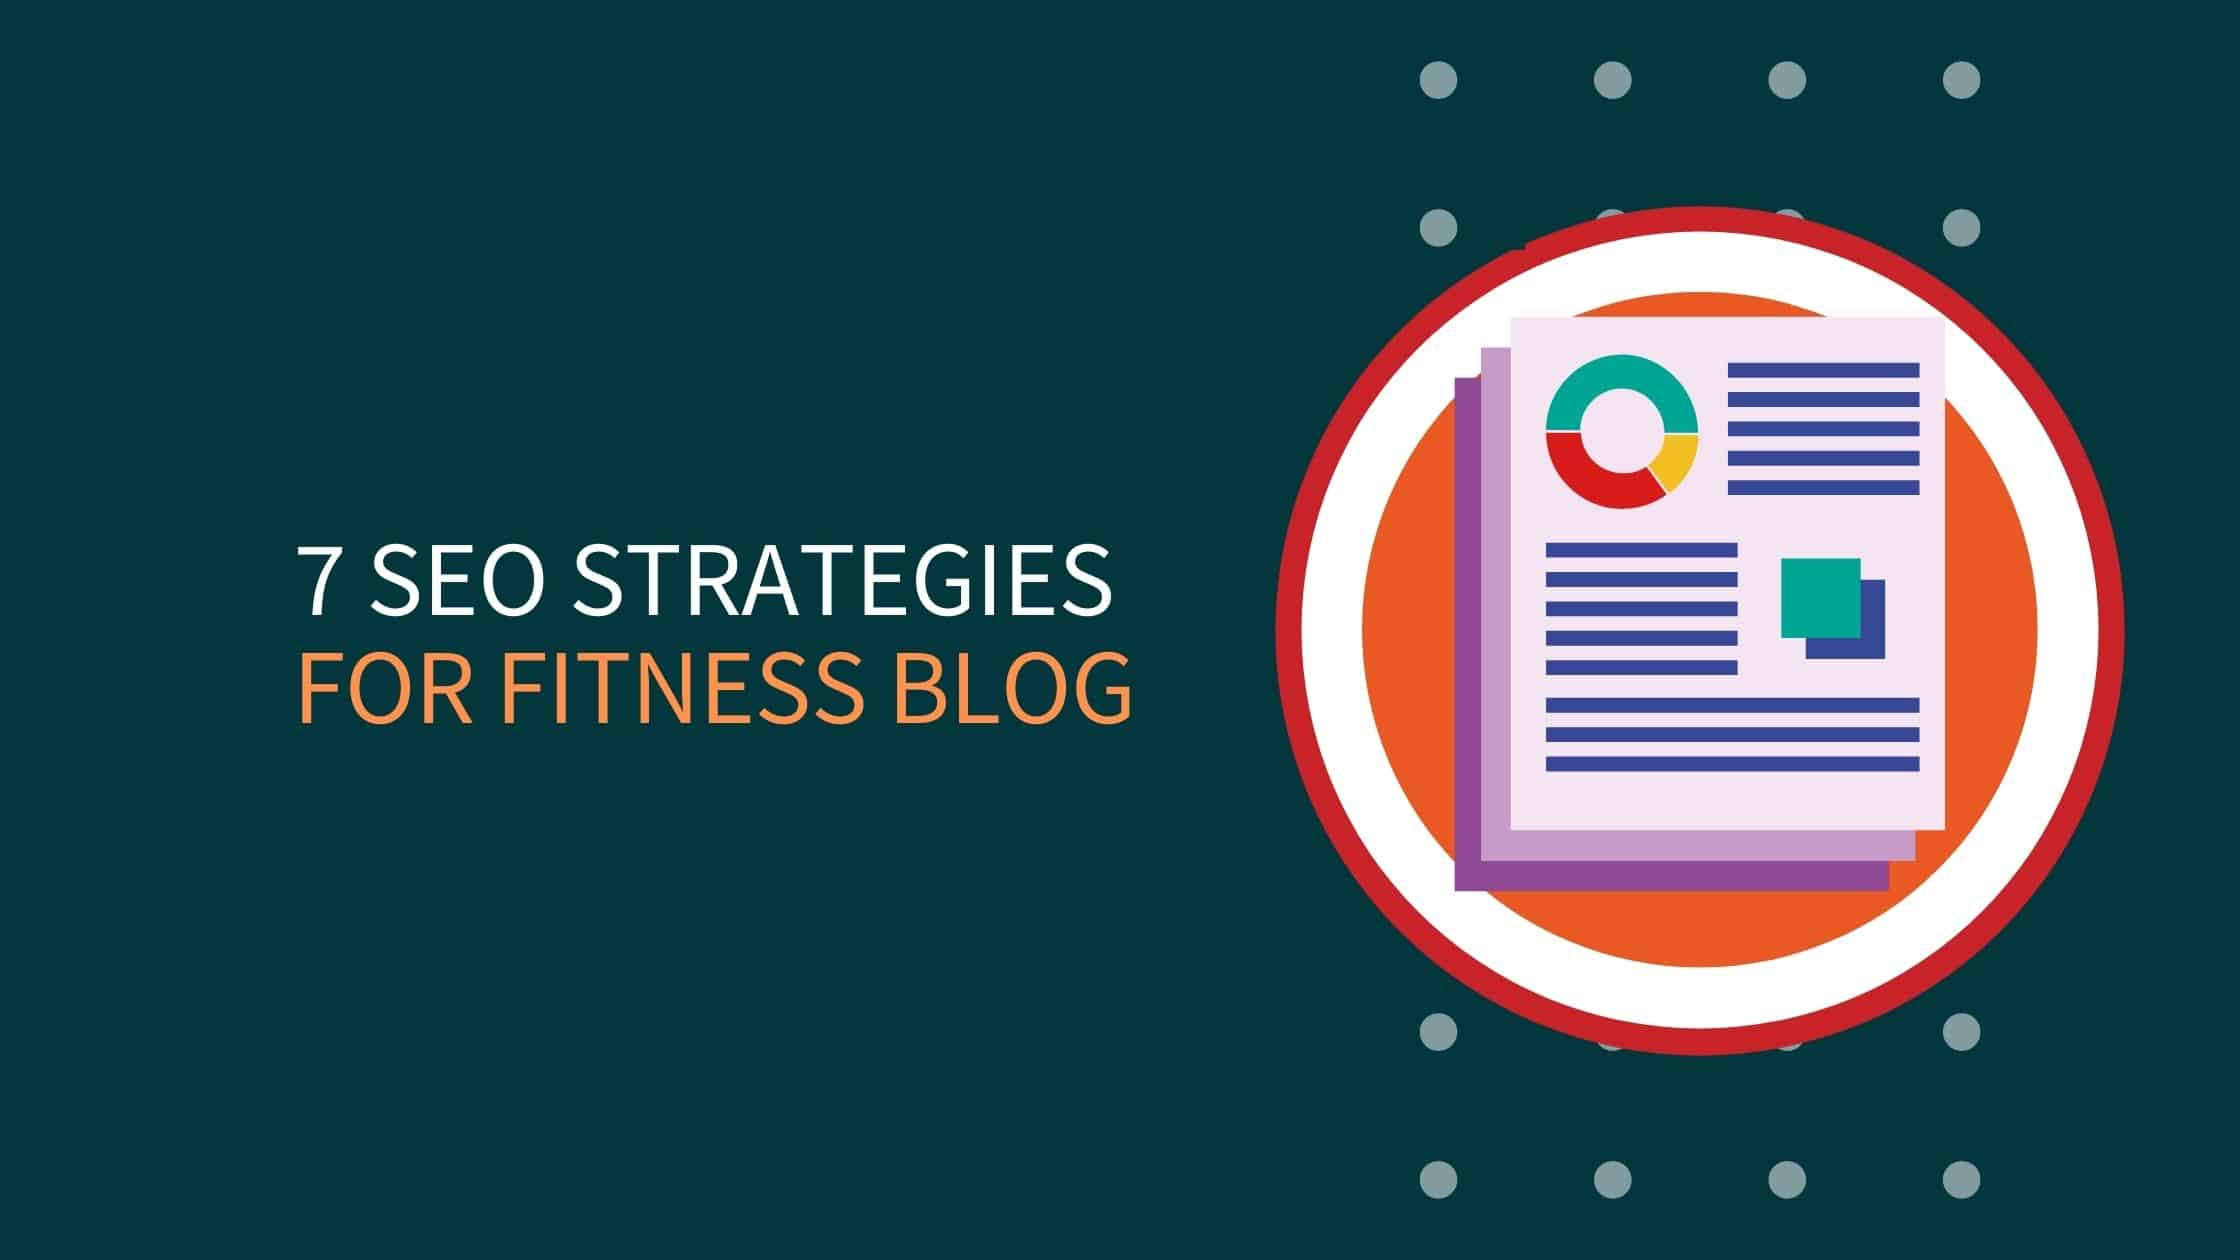 7 Best SEO Strategies For Fitness Business Owners